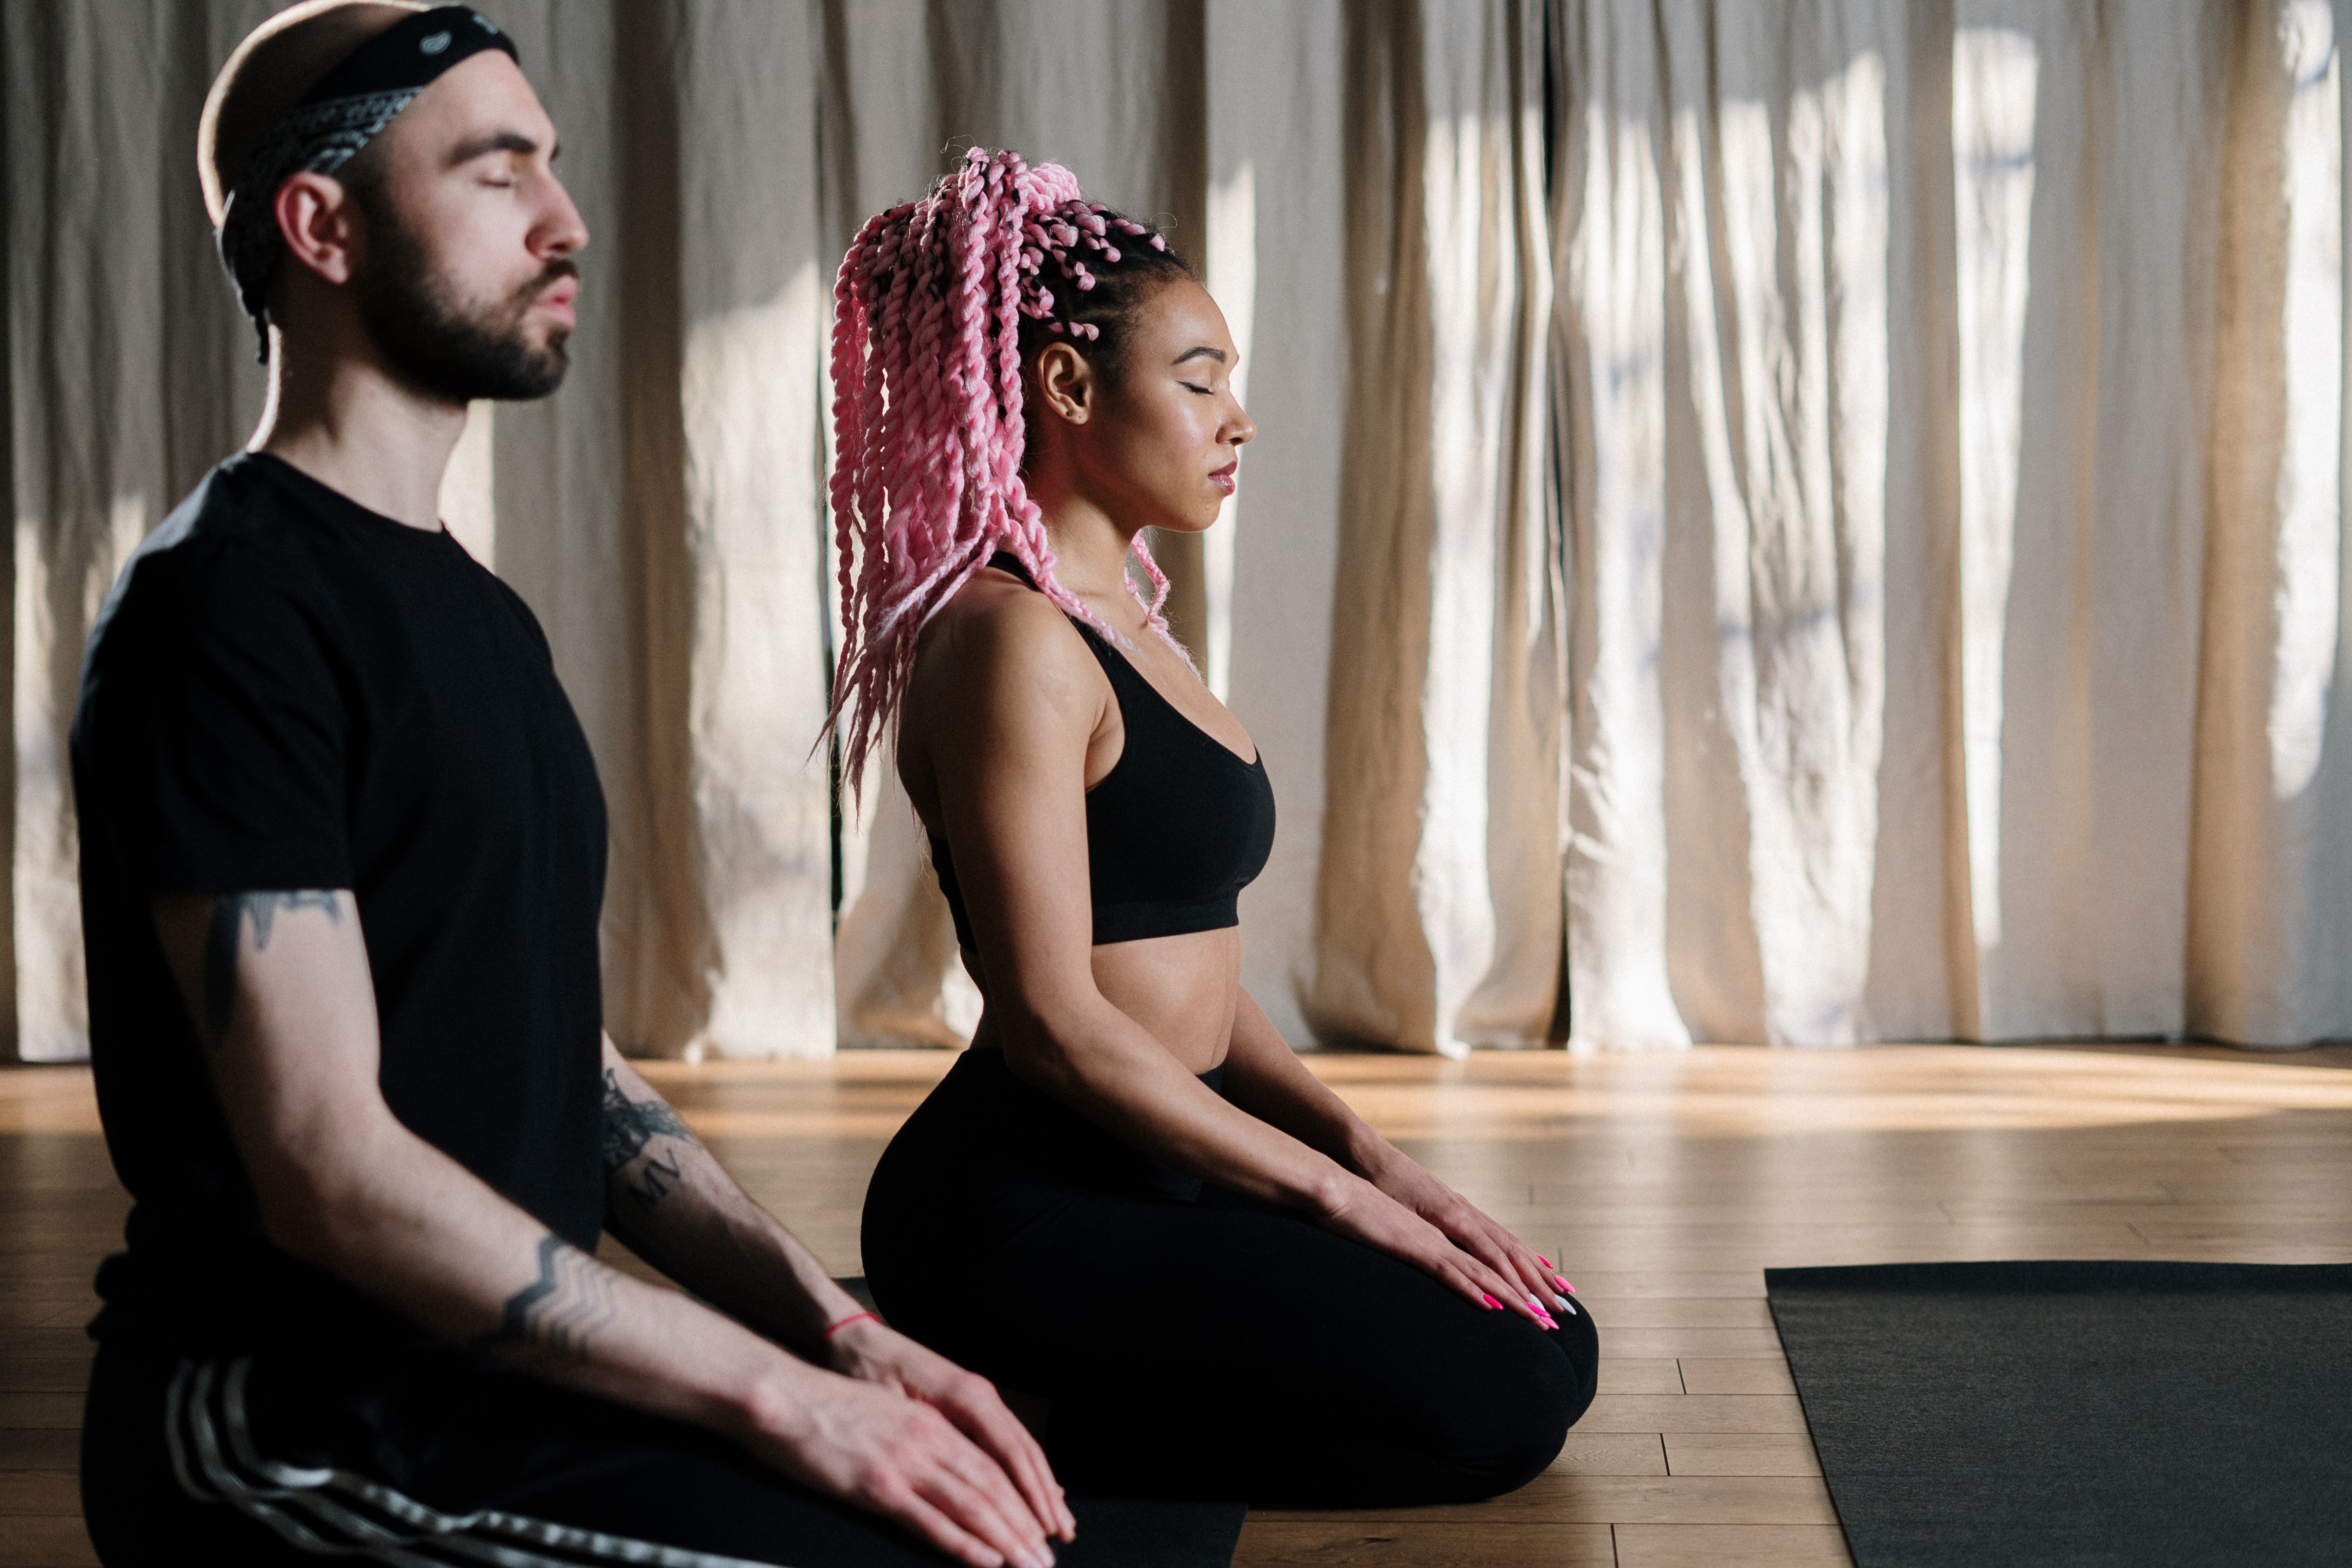 a man an a woman sitting on their knees in meditative postures with their eyes closed